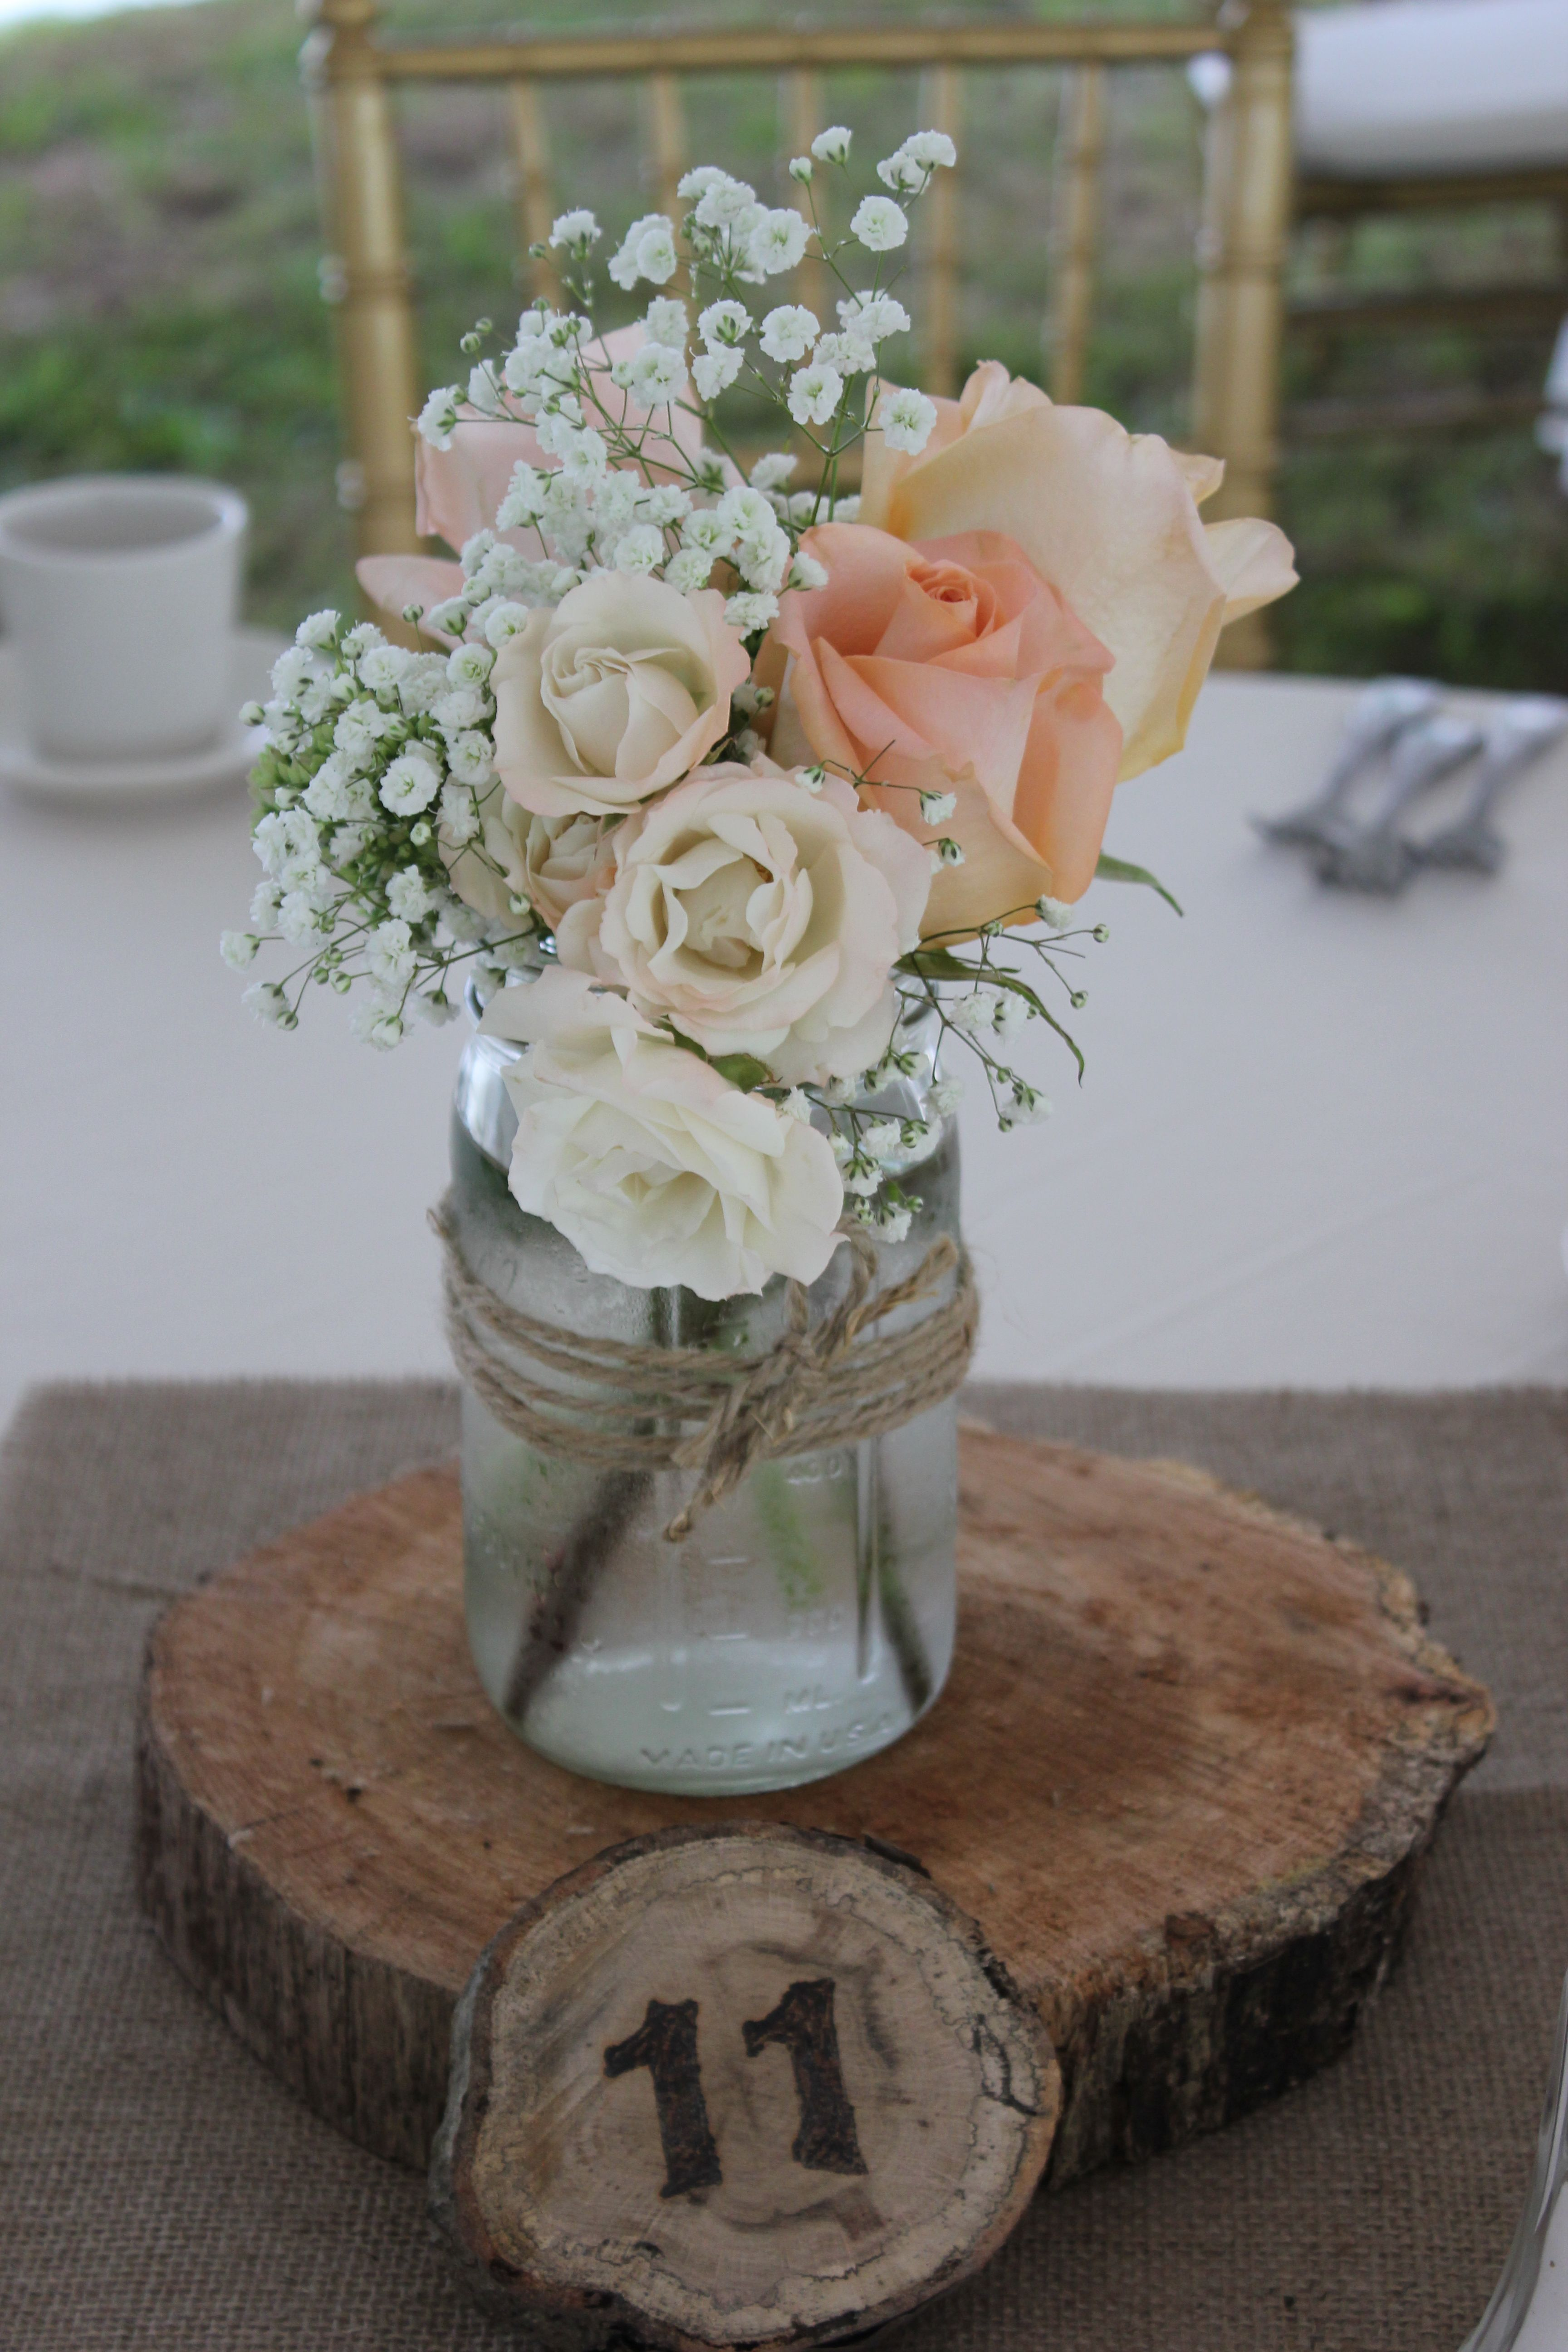 Tiffany Peach Roses Majolica Spray Roses And Babies Breath In A Mason Jar For A Lovely Wedding Centerpieces Rustic Wedding Decor Rustic Wedding Centerpieces